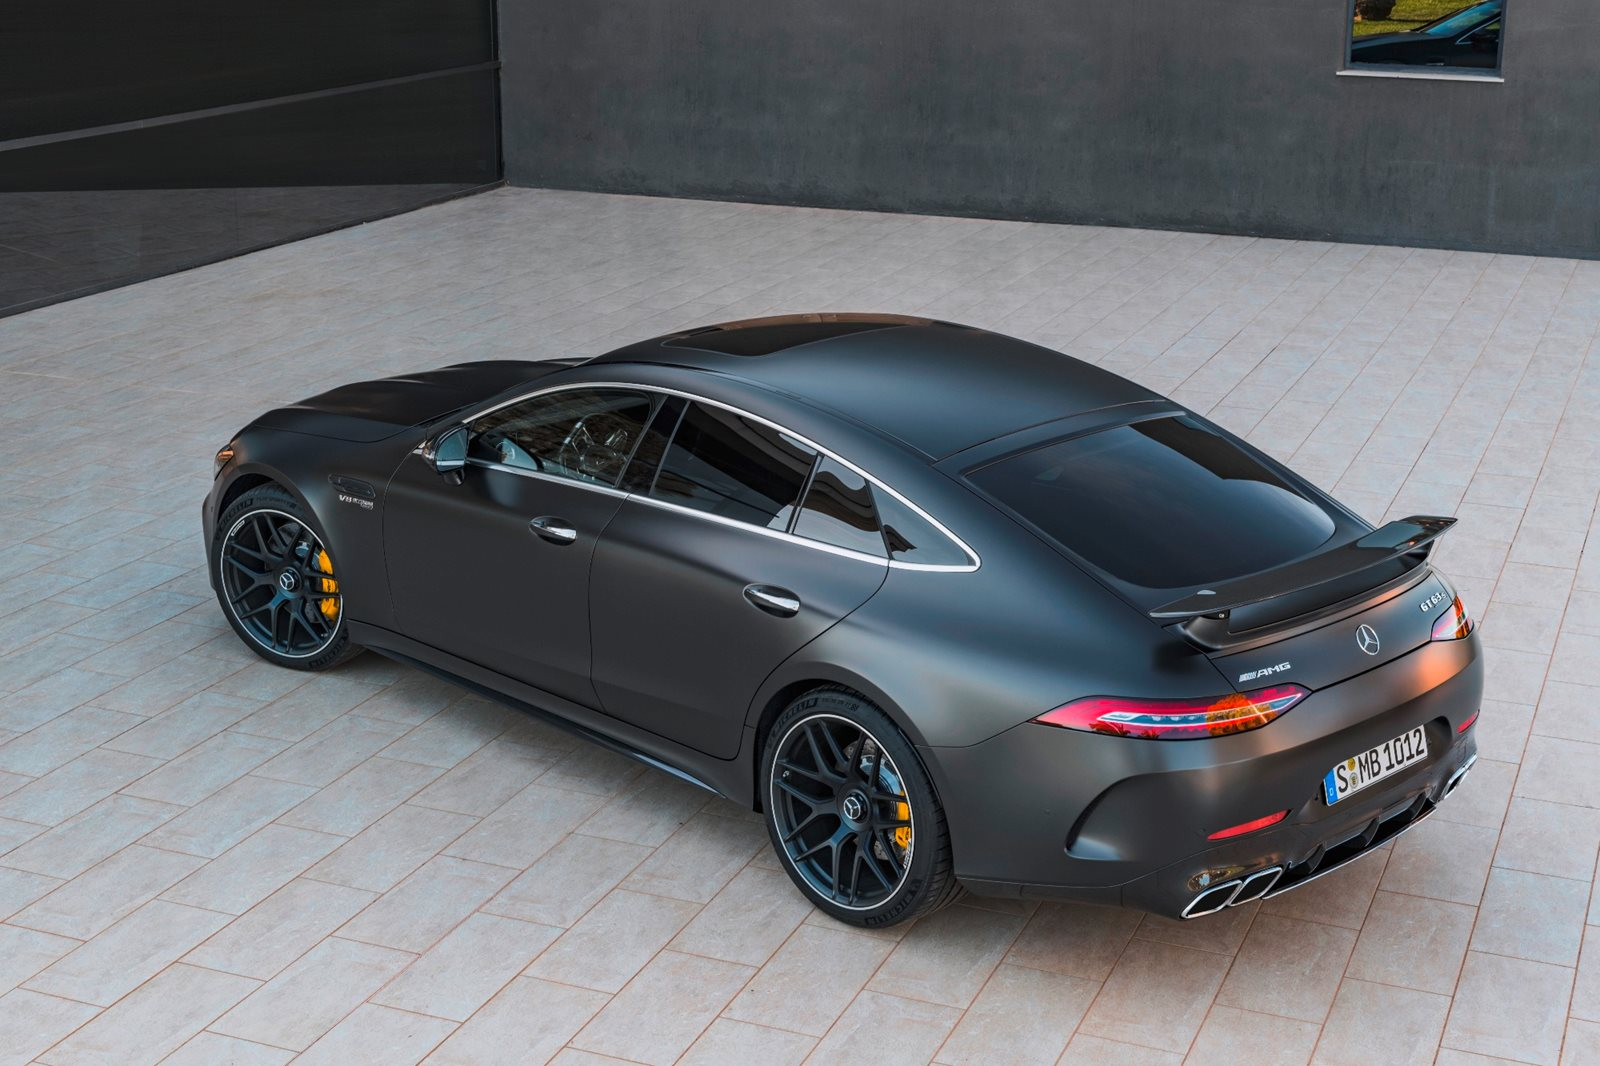 2019-2020 Mercedes-AMG GT 63 Rear Angle View